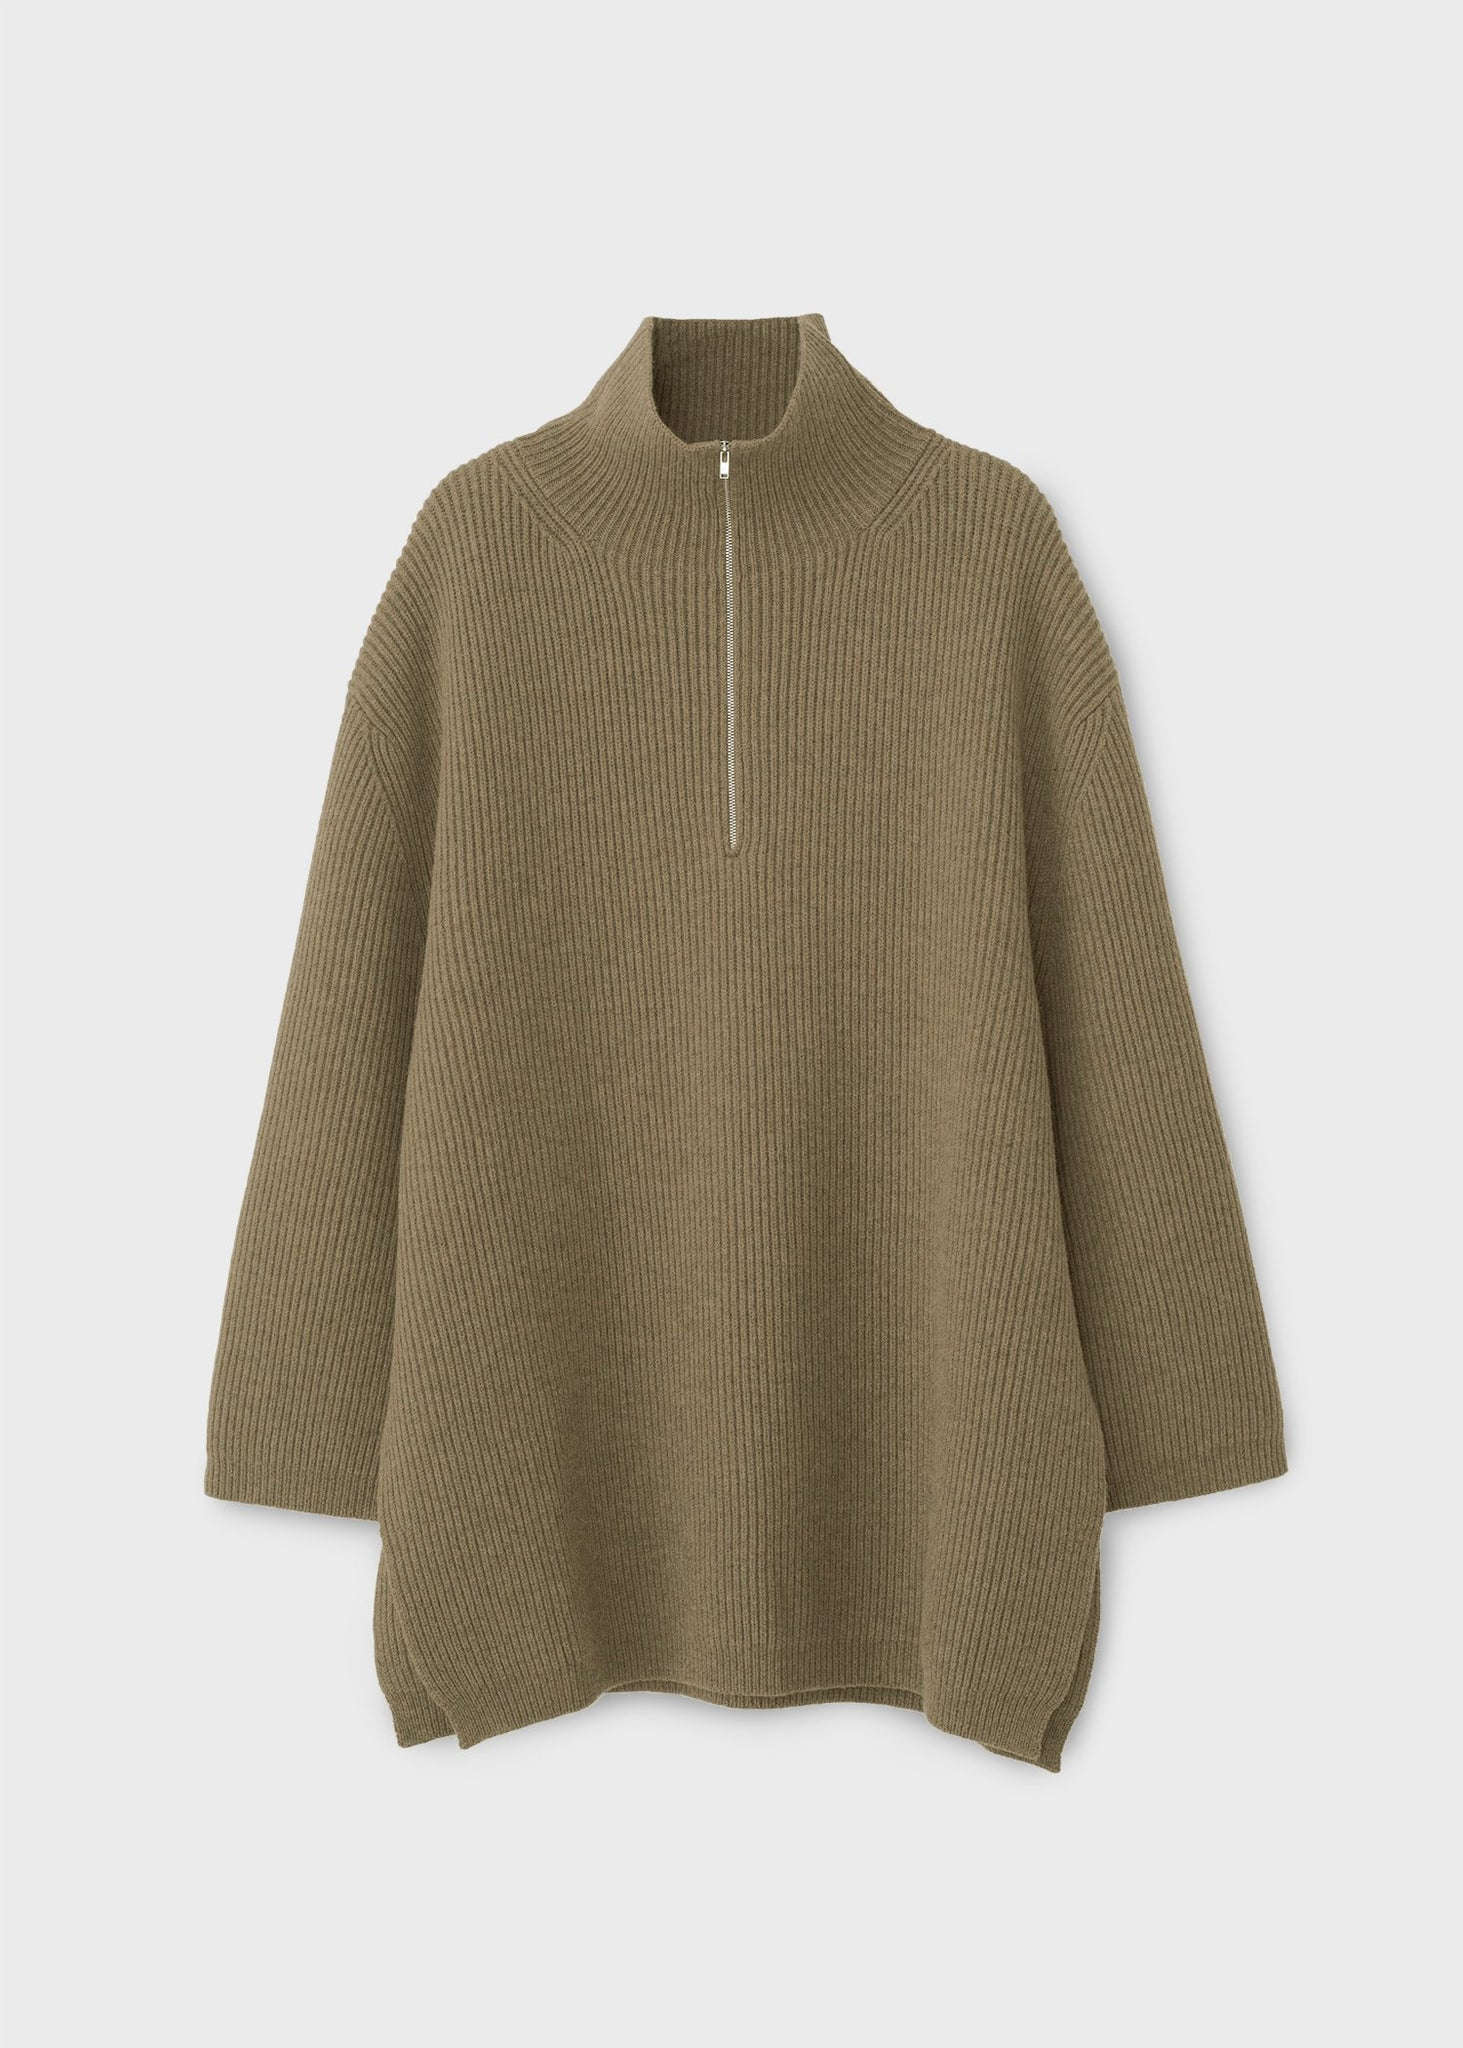 Fisherman knit moss melange